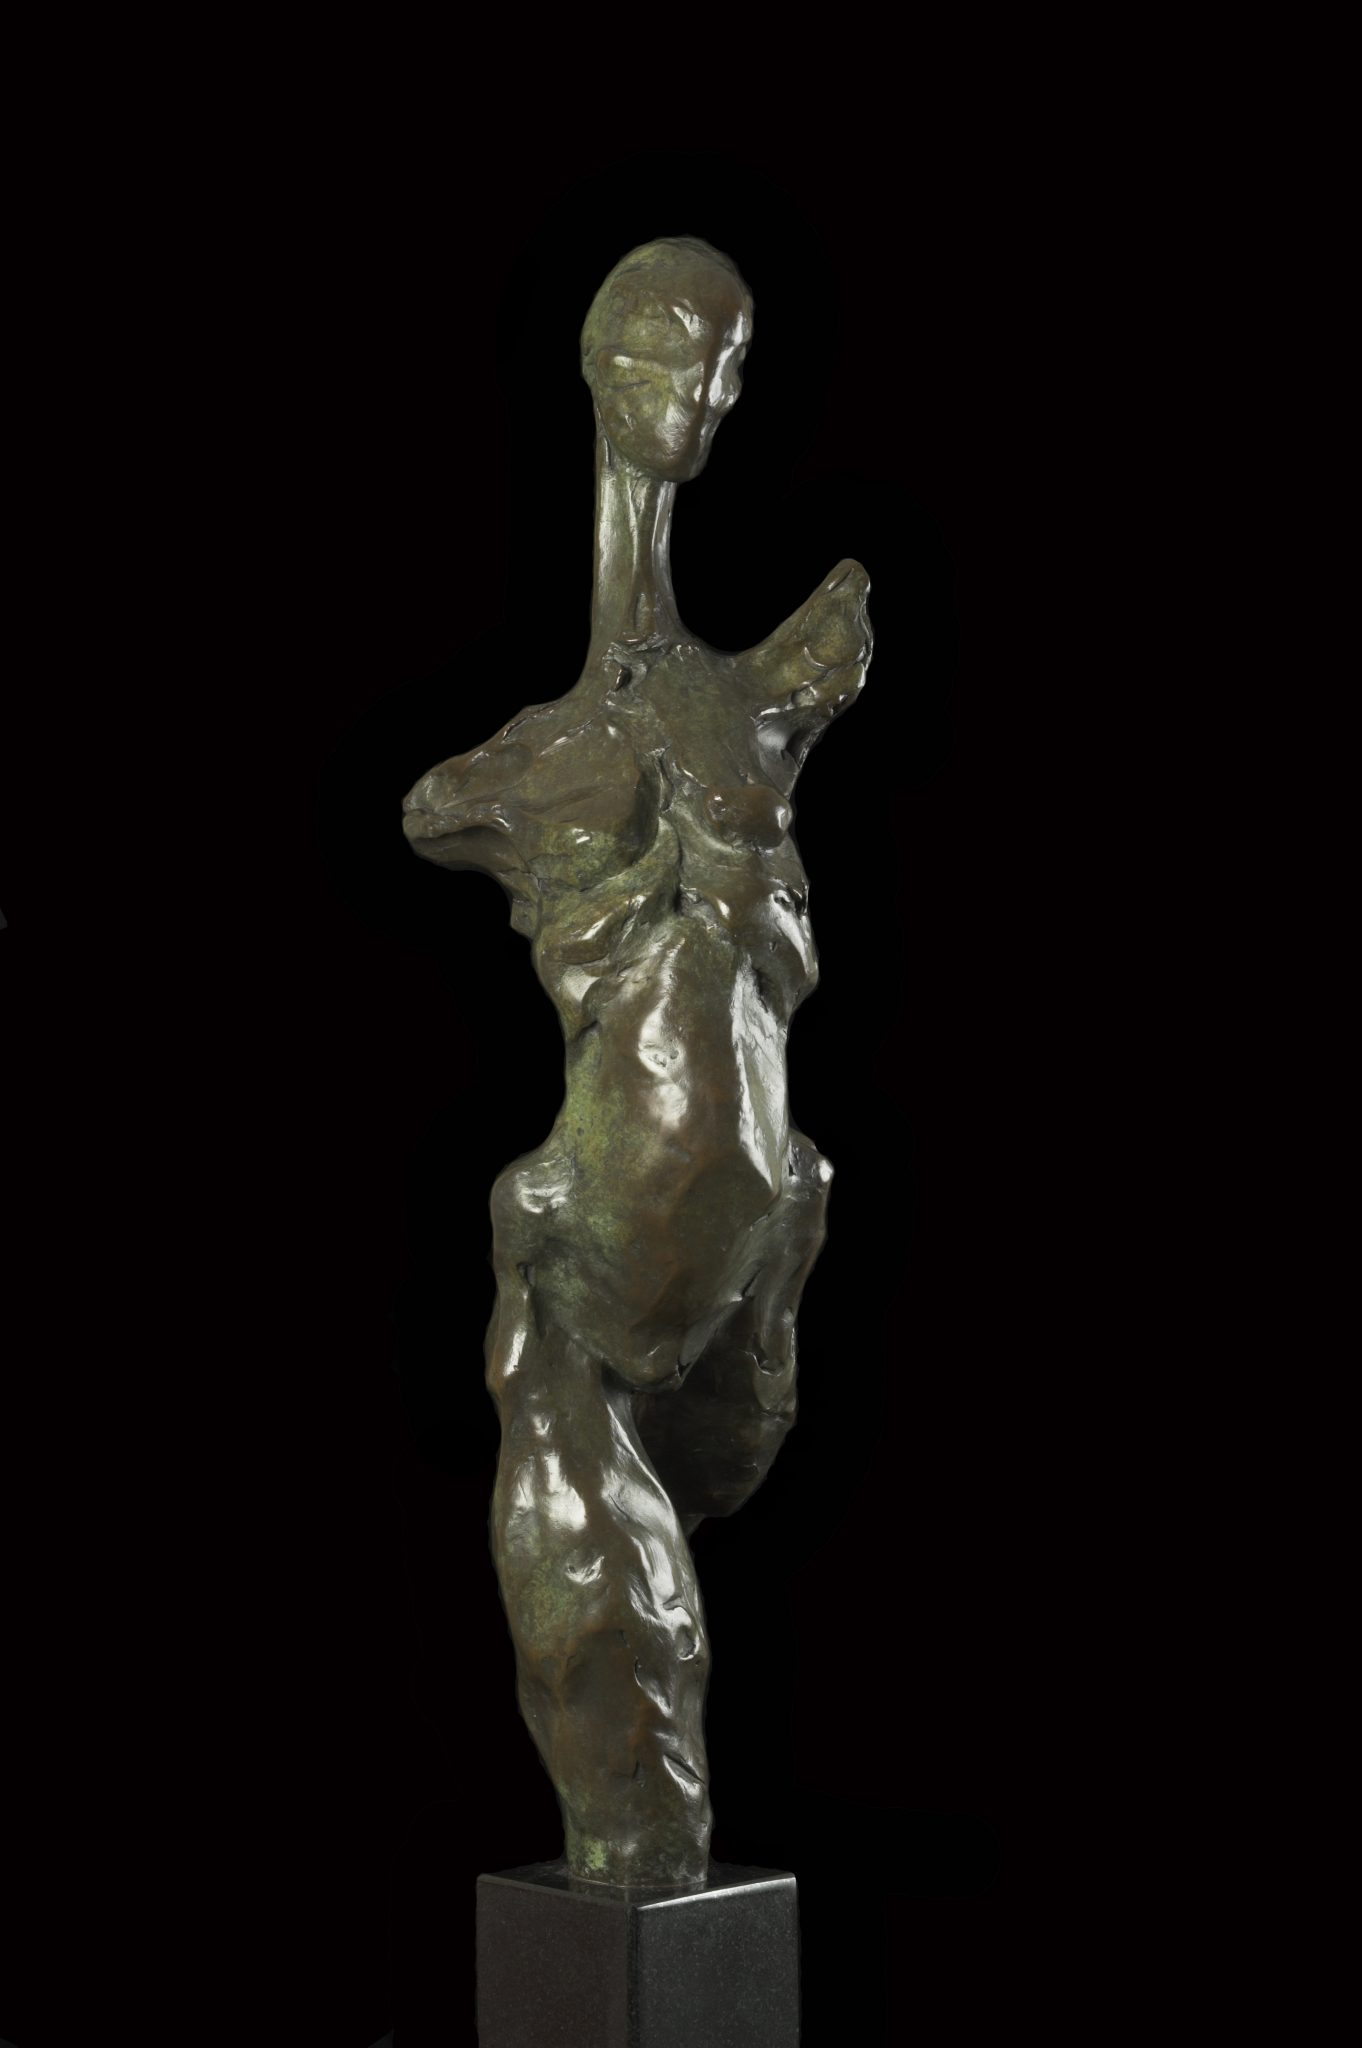 Bronze sculpture of dancing figure